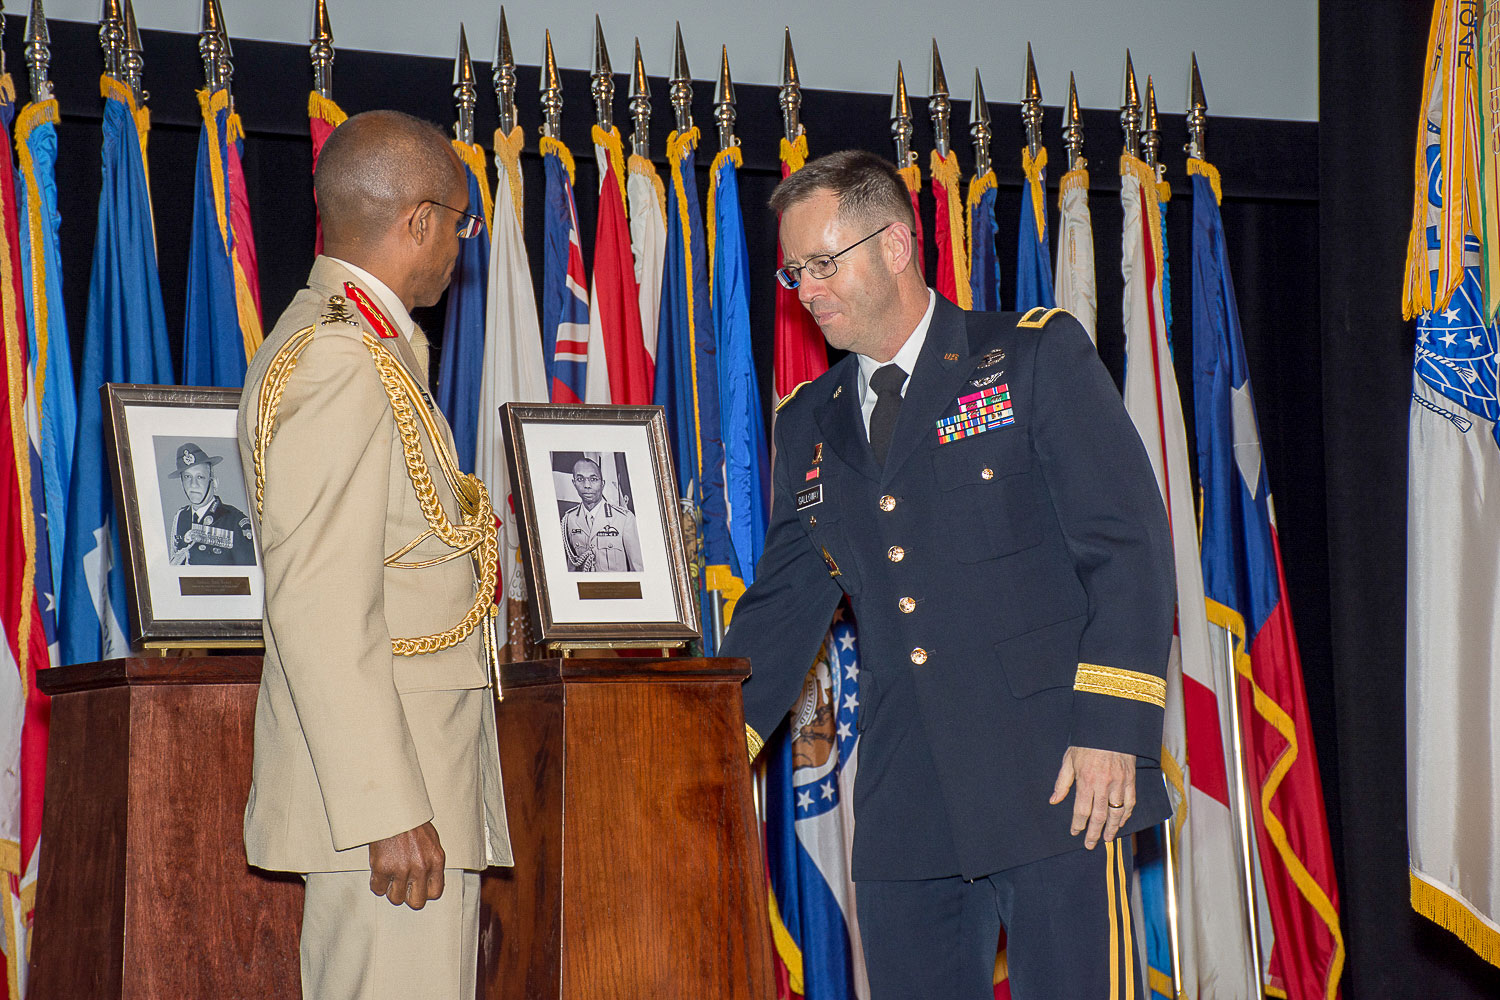 Interim Army University Provost/CGSC Deputy Commandant Brig. Gen. Troy Galloway and Lt. Gen. Rocky Ricardo Meade, chief of Defence Staff, Jamaica Defence Force, unveil Meade's International Hall of Fame portrait during the ceremony.